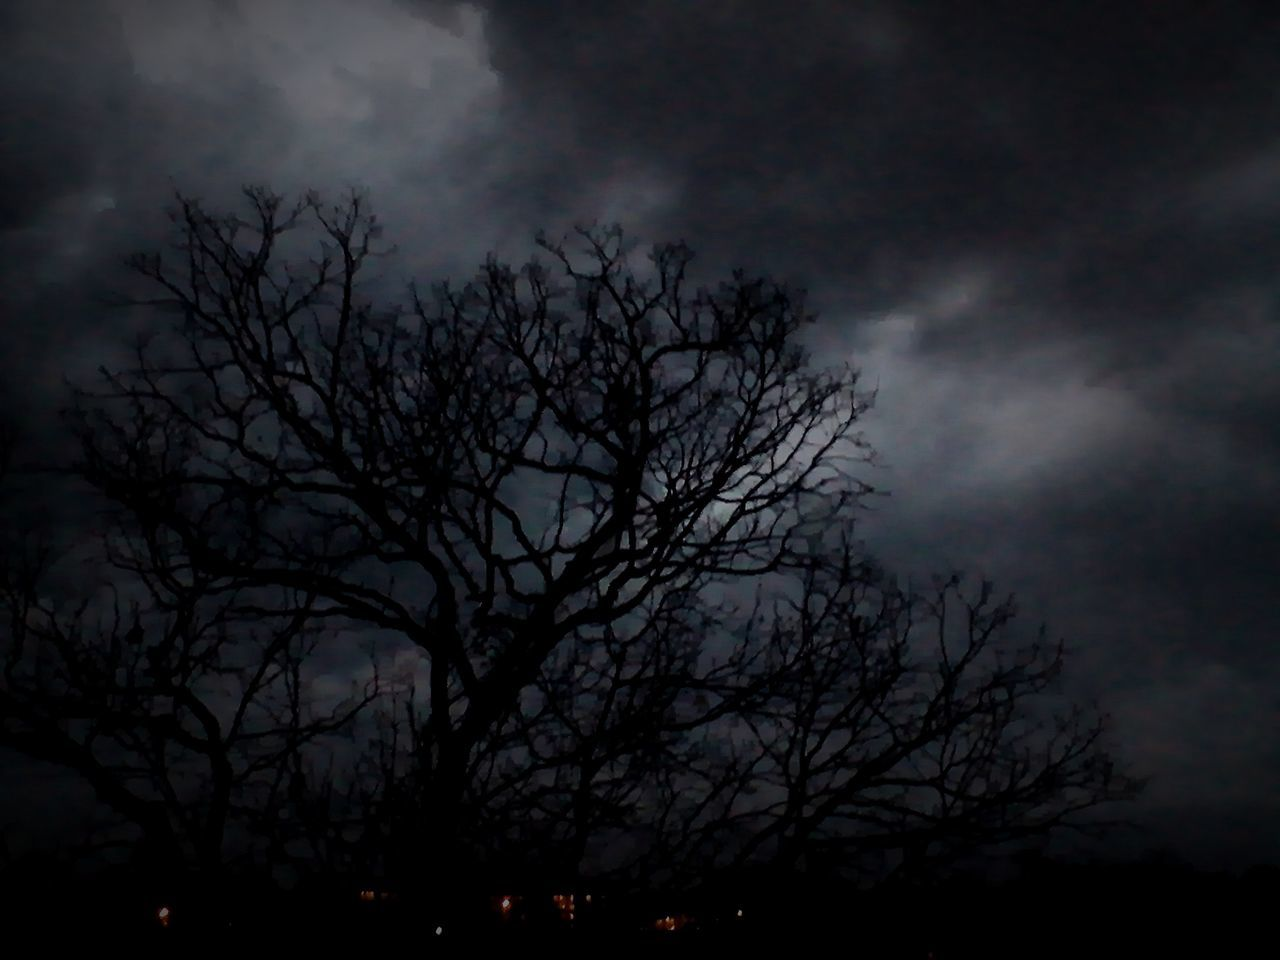 tree, sky, night, silhouette, nature, bare tree, beauty in nature, moon, dark, cloud - sky, scenics, outdoors, tranquility, dusk, branch, no people, tranquil scene, low angle view, storm cloud, landscape, moonlight, sunset, astronomy